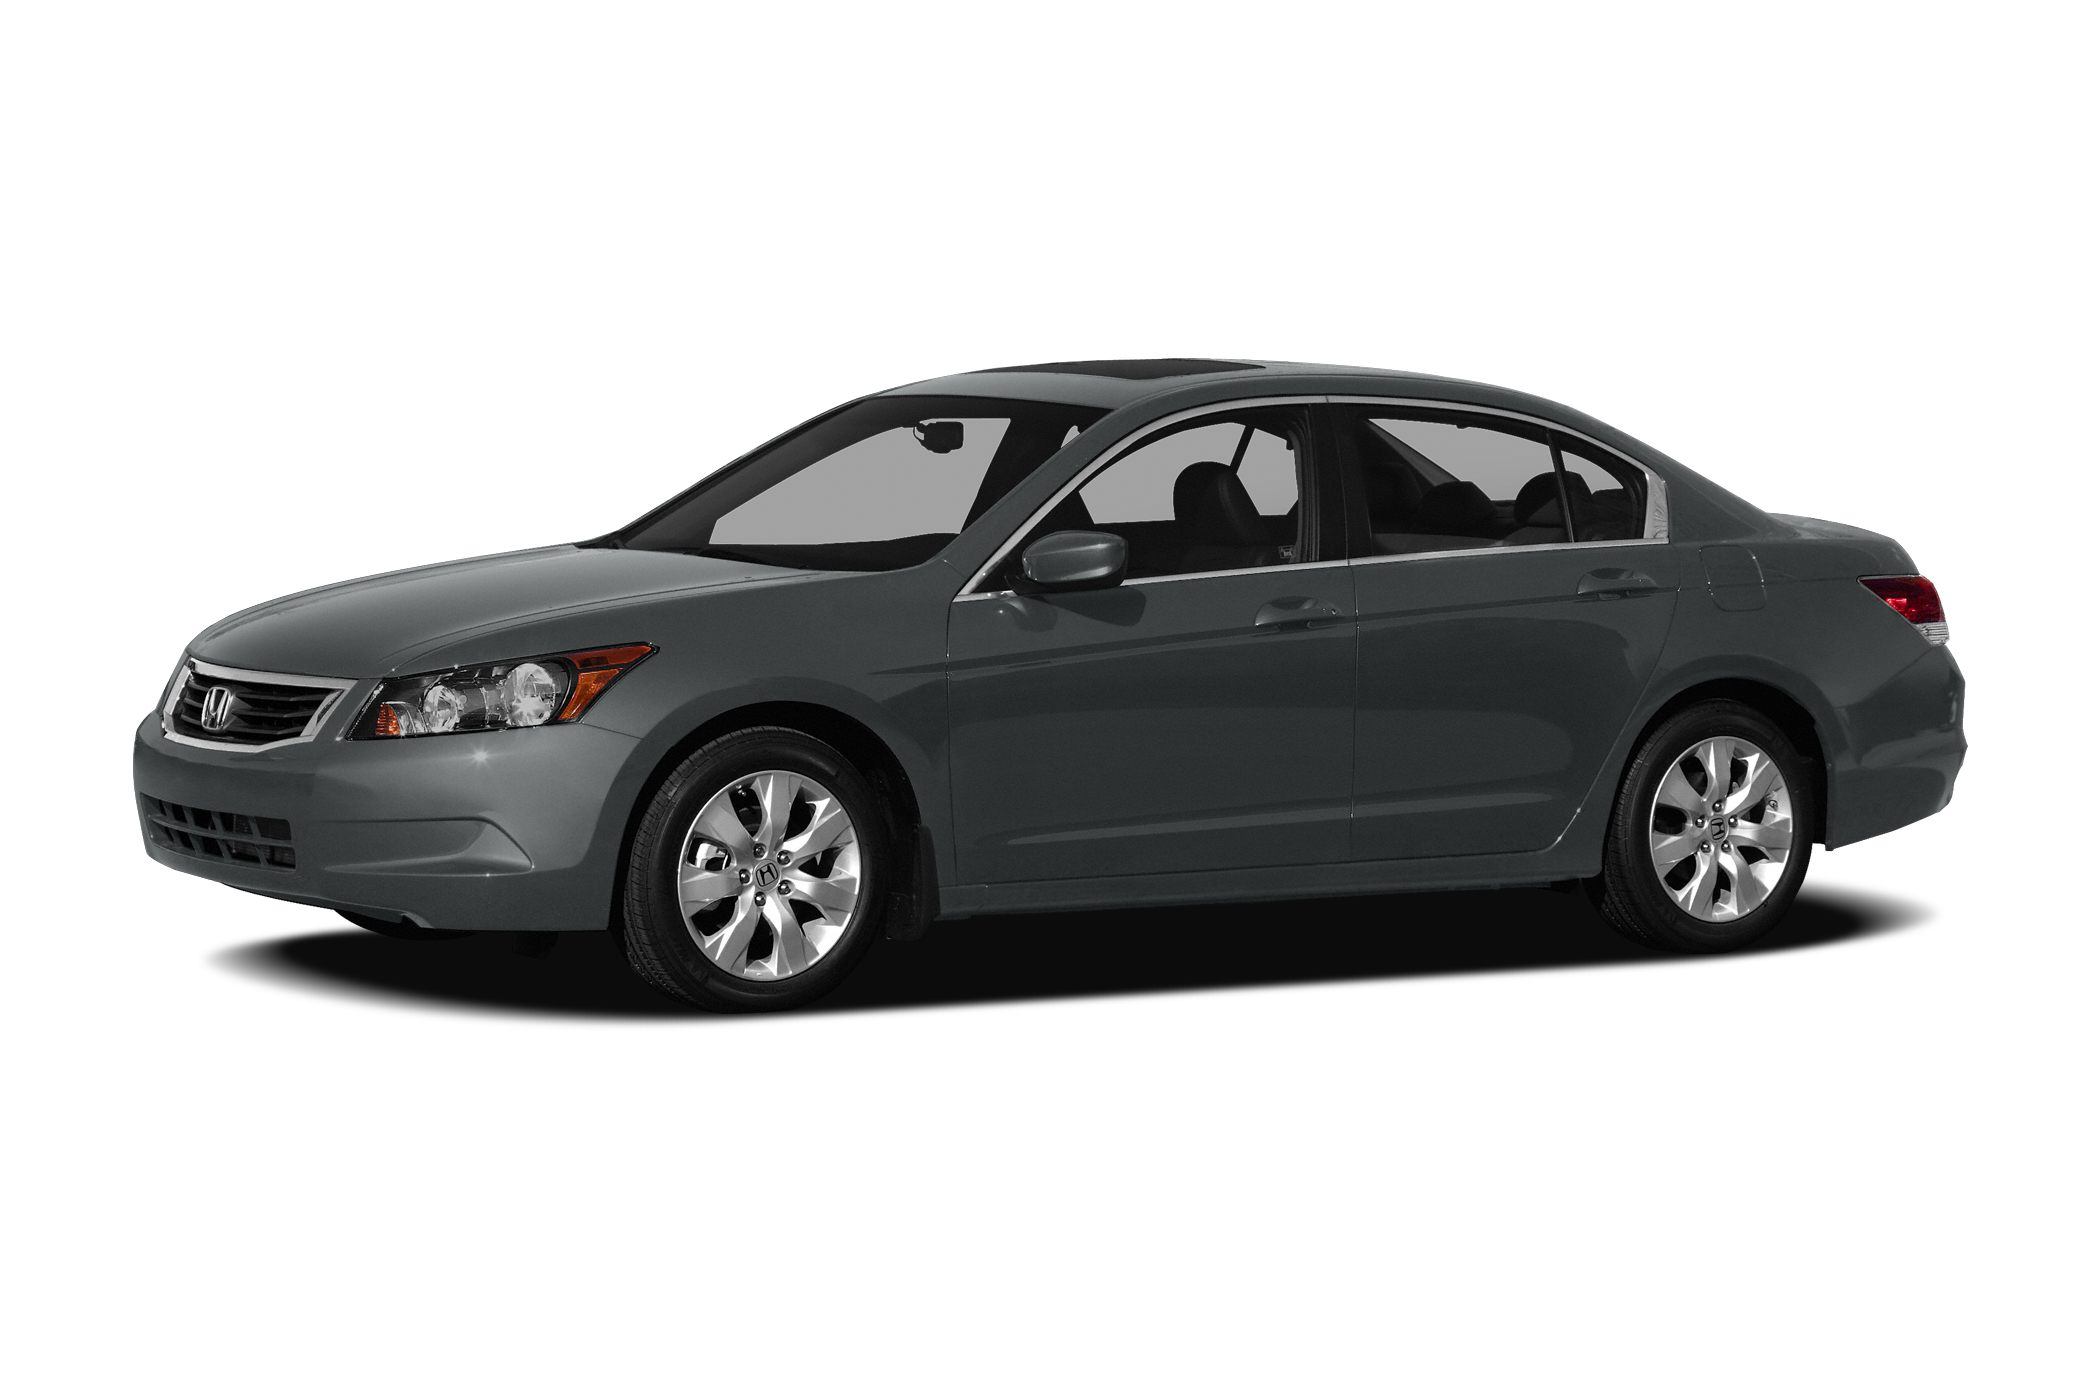 2010 Honda Accord LX Sedan for sale in Venice for $14,995 with 19,501 miles.